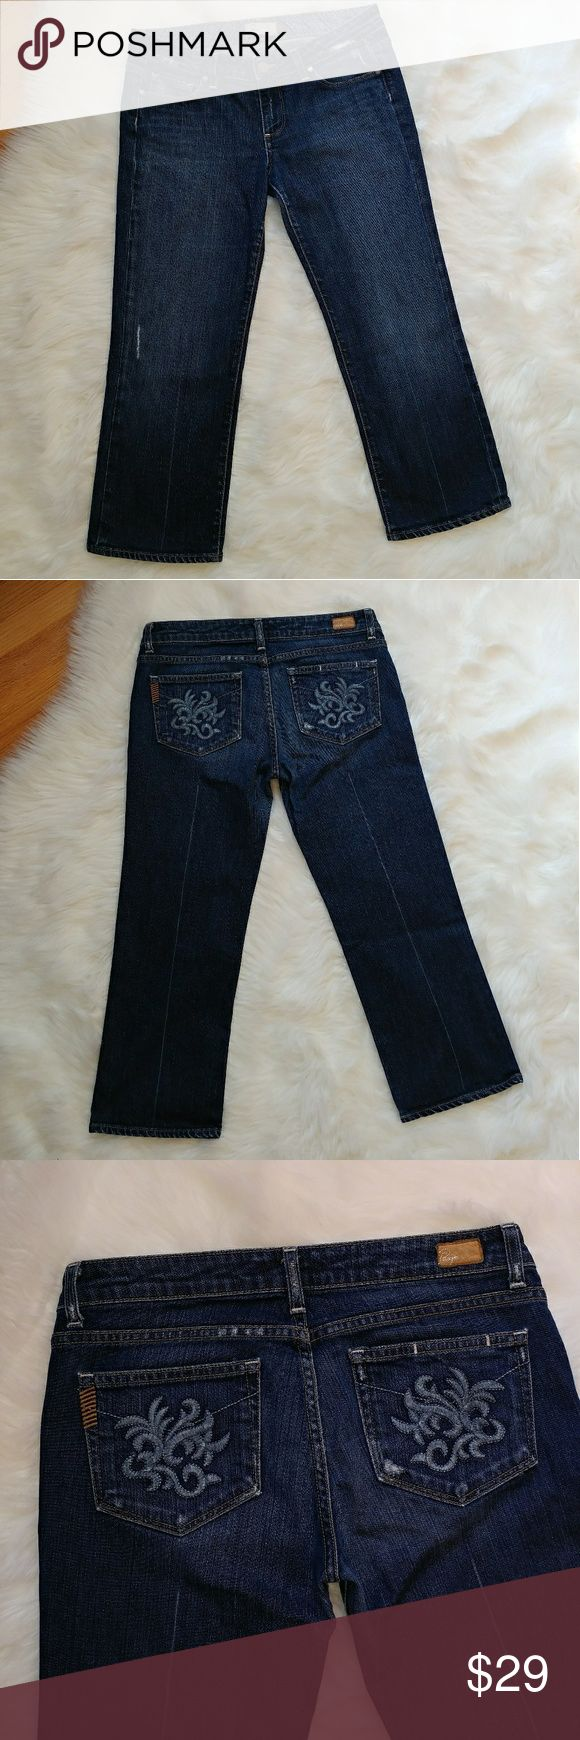 """PAIGE premium denim Laurel Canyon crop jeans PAIGE premium denim Laurel Canyon crop jeans  In good condition  Has a some wear on the inseam (pictured) Measuments taken laying flat across: Inseam 23"""" Front rise 8"""" Waist 16"""" Paige Jeans Jeans"""